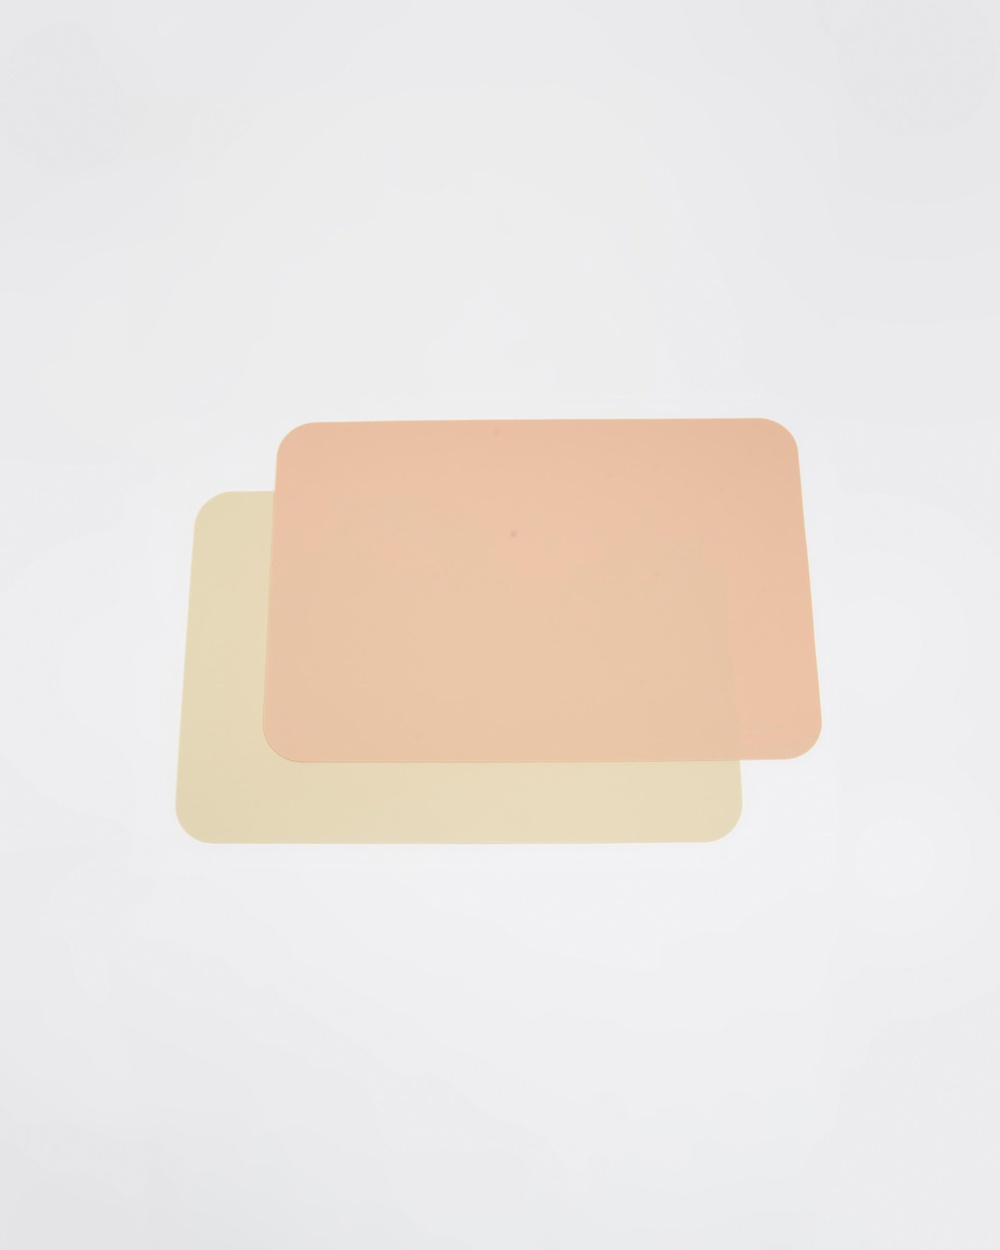 Bare and Boho Silicone Placemat Rectangle 2 Pack ICONIC EXCLUSIVE Nursing & Feeding Oat Mushroom Pink 2-Pack